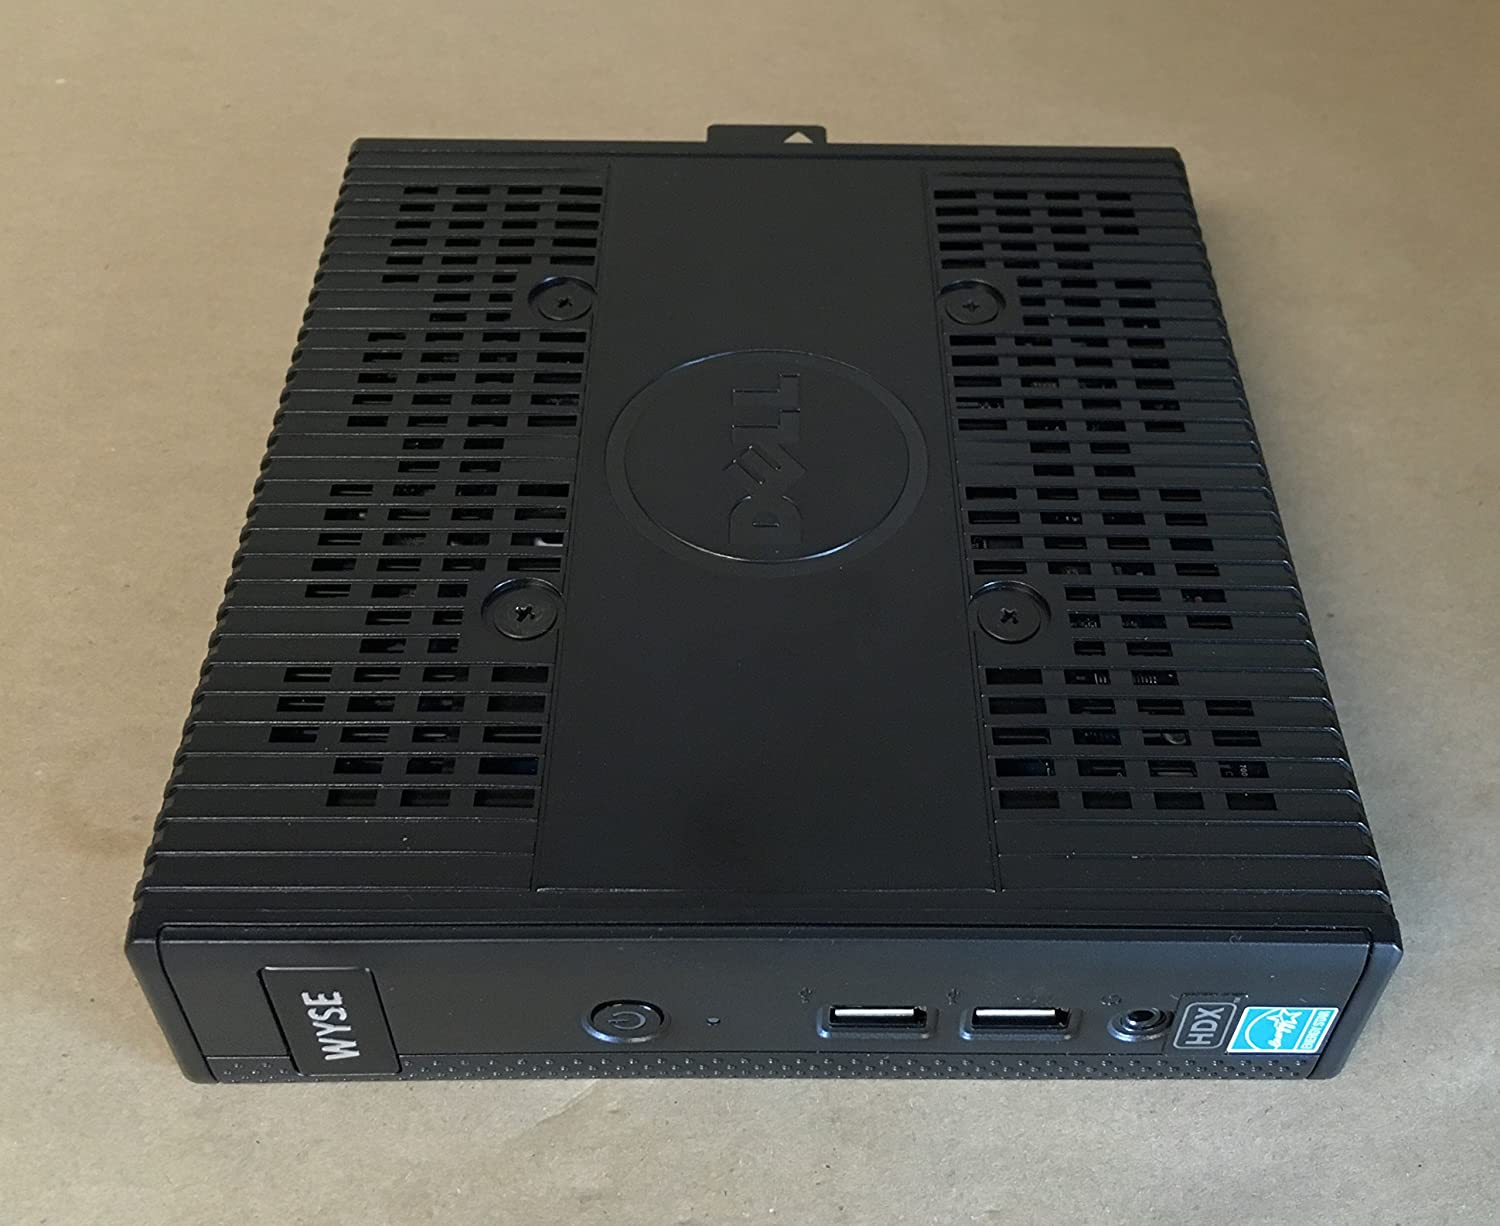 Dell Wyse WDKD5 5010 Mini Desktop, 2 GB RAM, 8 GB Flash, AMD Radeon HD 6250, Black